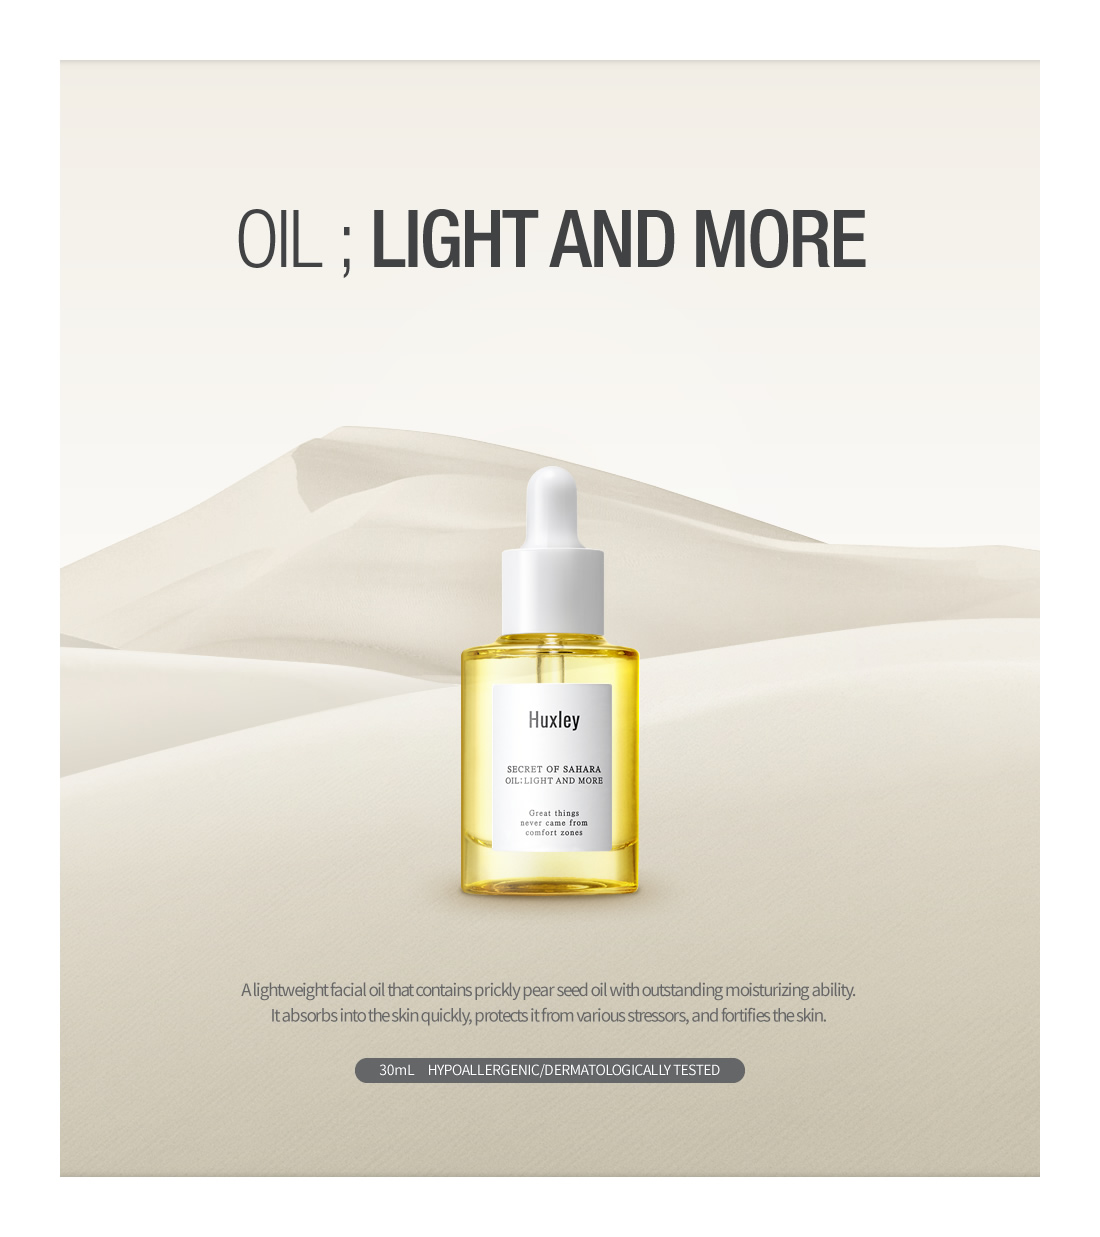 oil-light-and-more-1.jpg